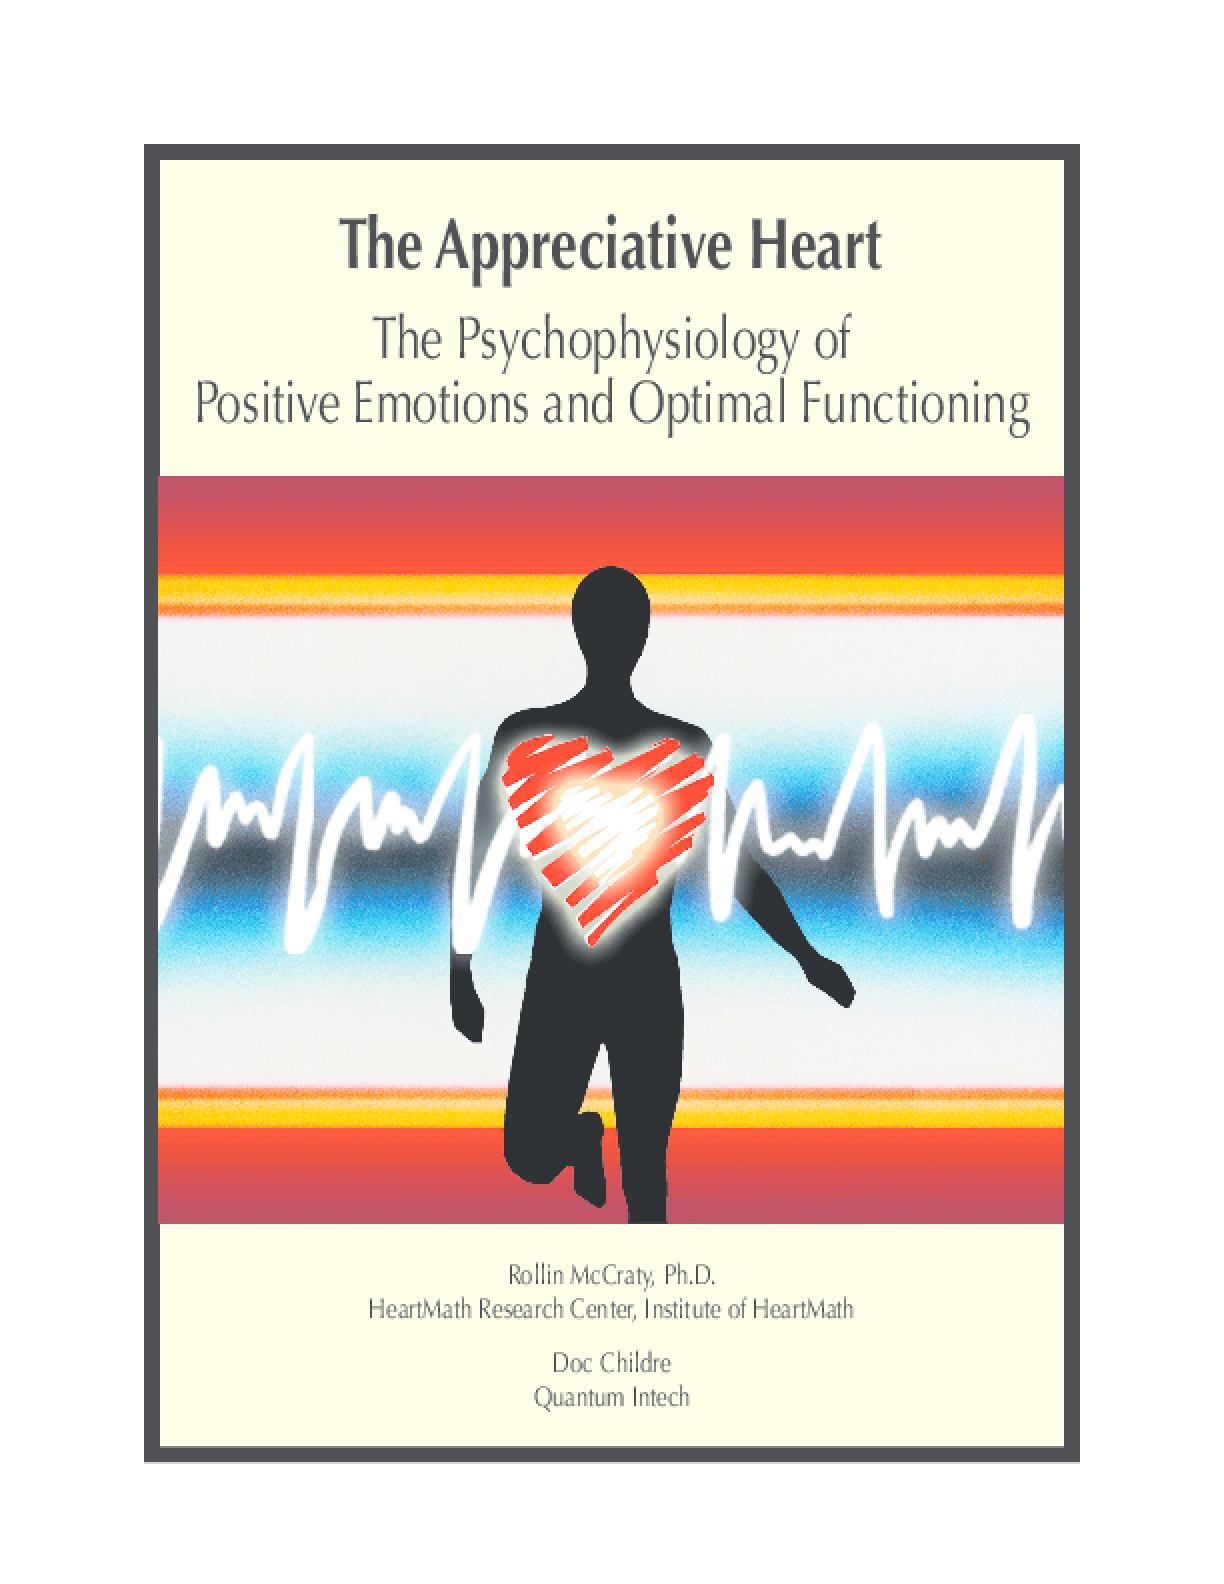 The Appreciative Heart: The Psychophysiology of Positive Emotions and Optimal Functioning